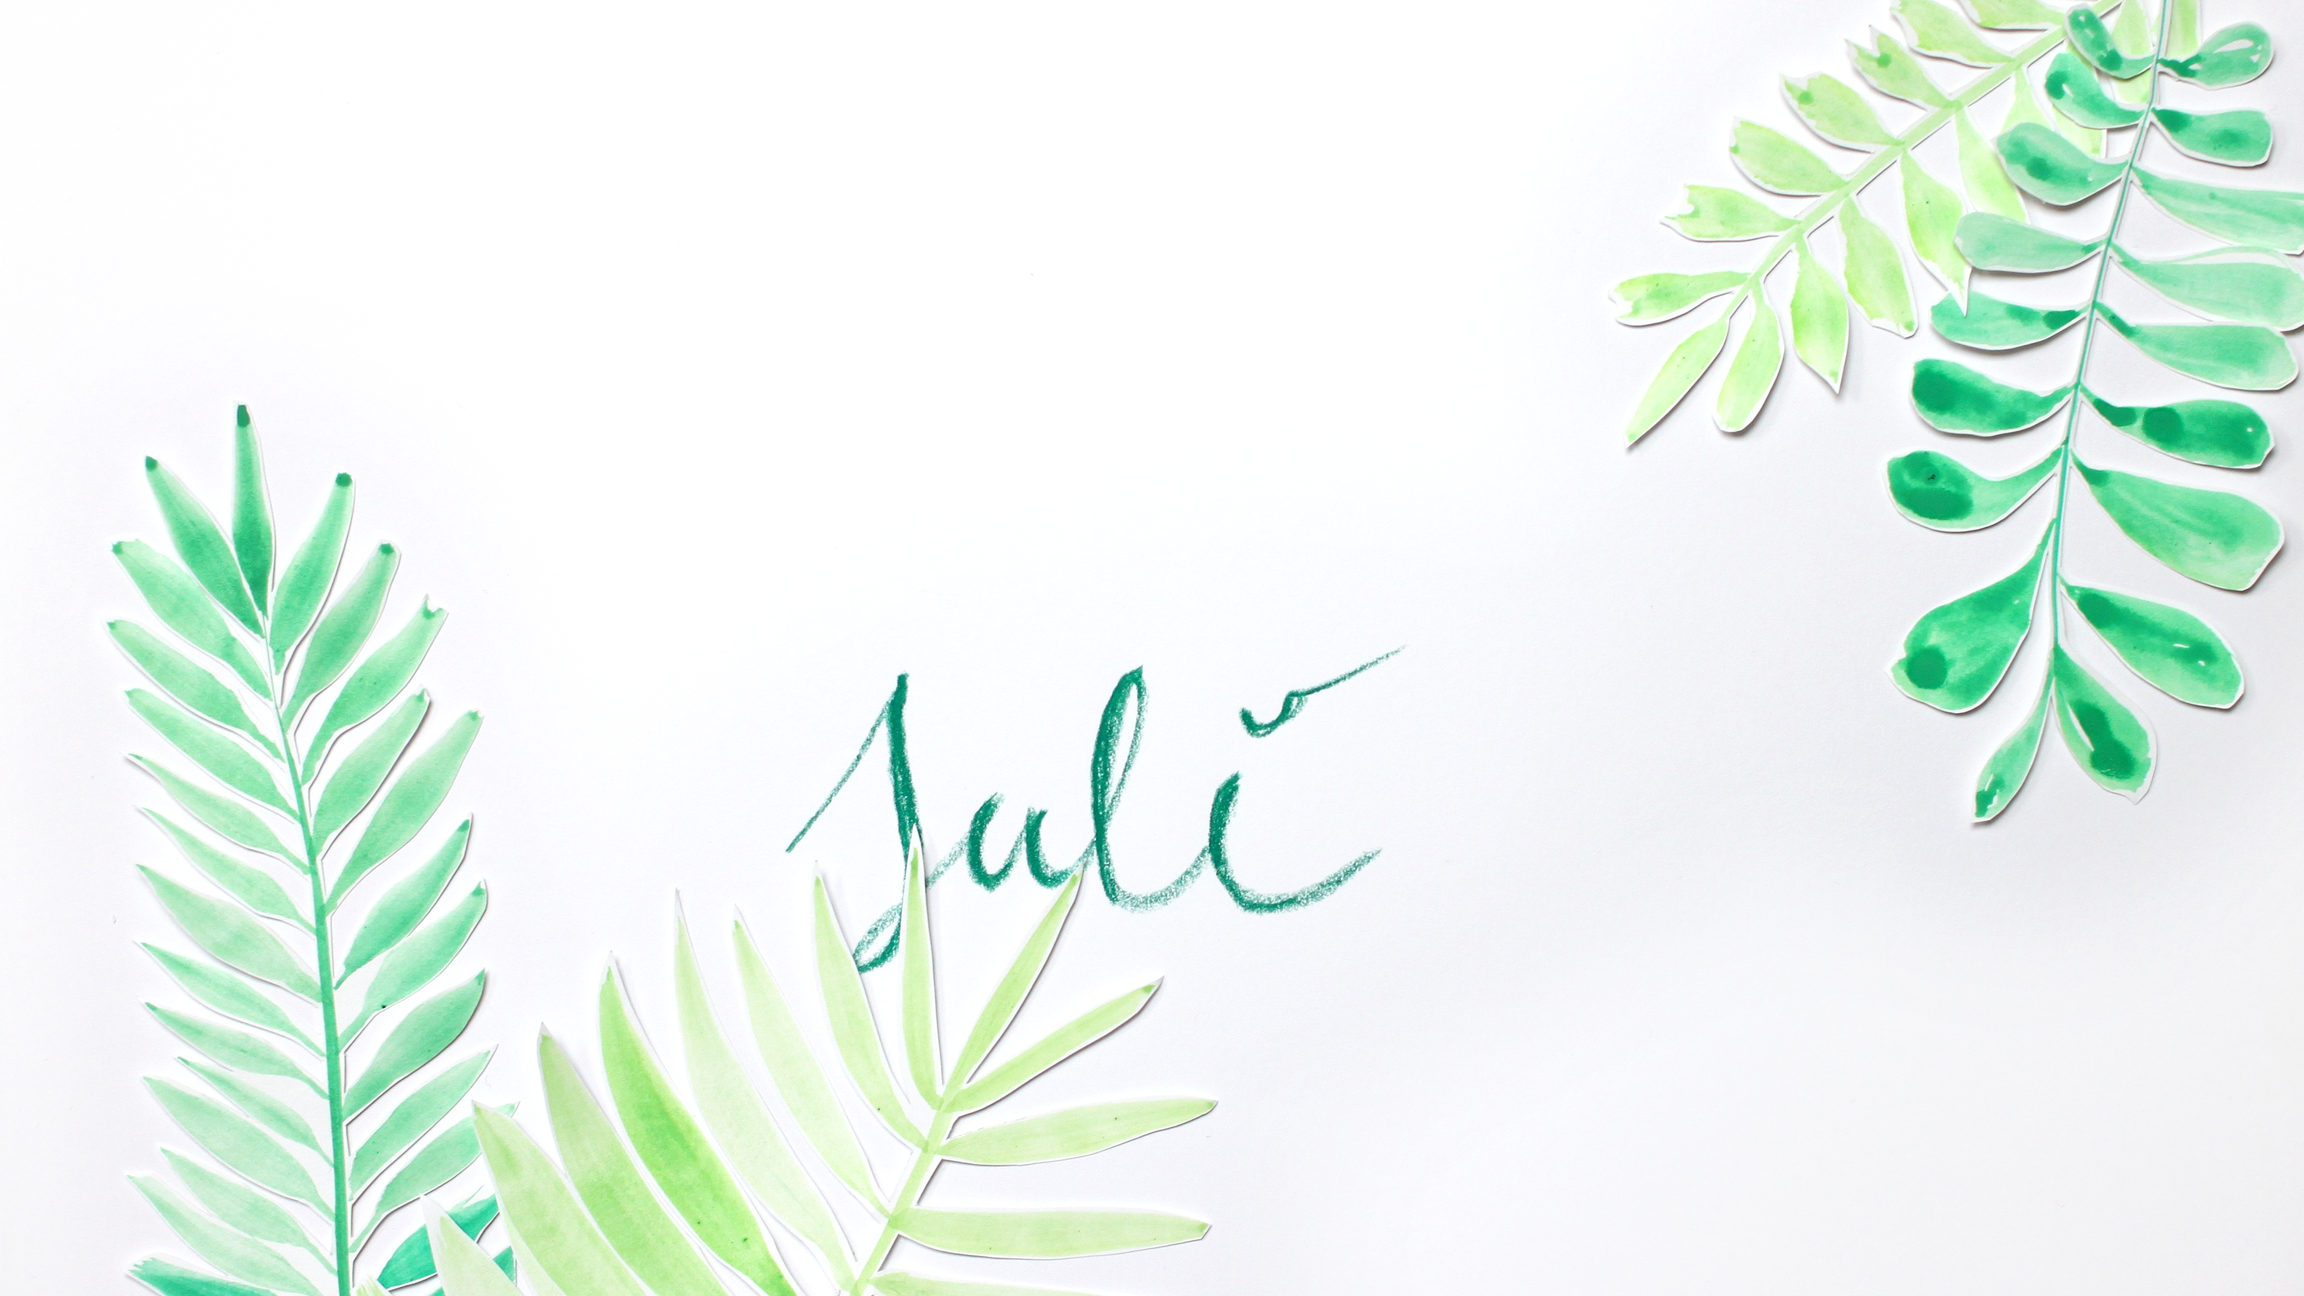 Computerkleider - Free Desktop Wallpaper Juli by We love handmade | Pinkepank